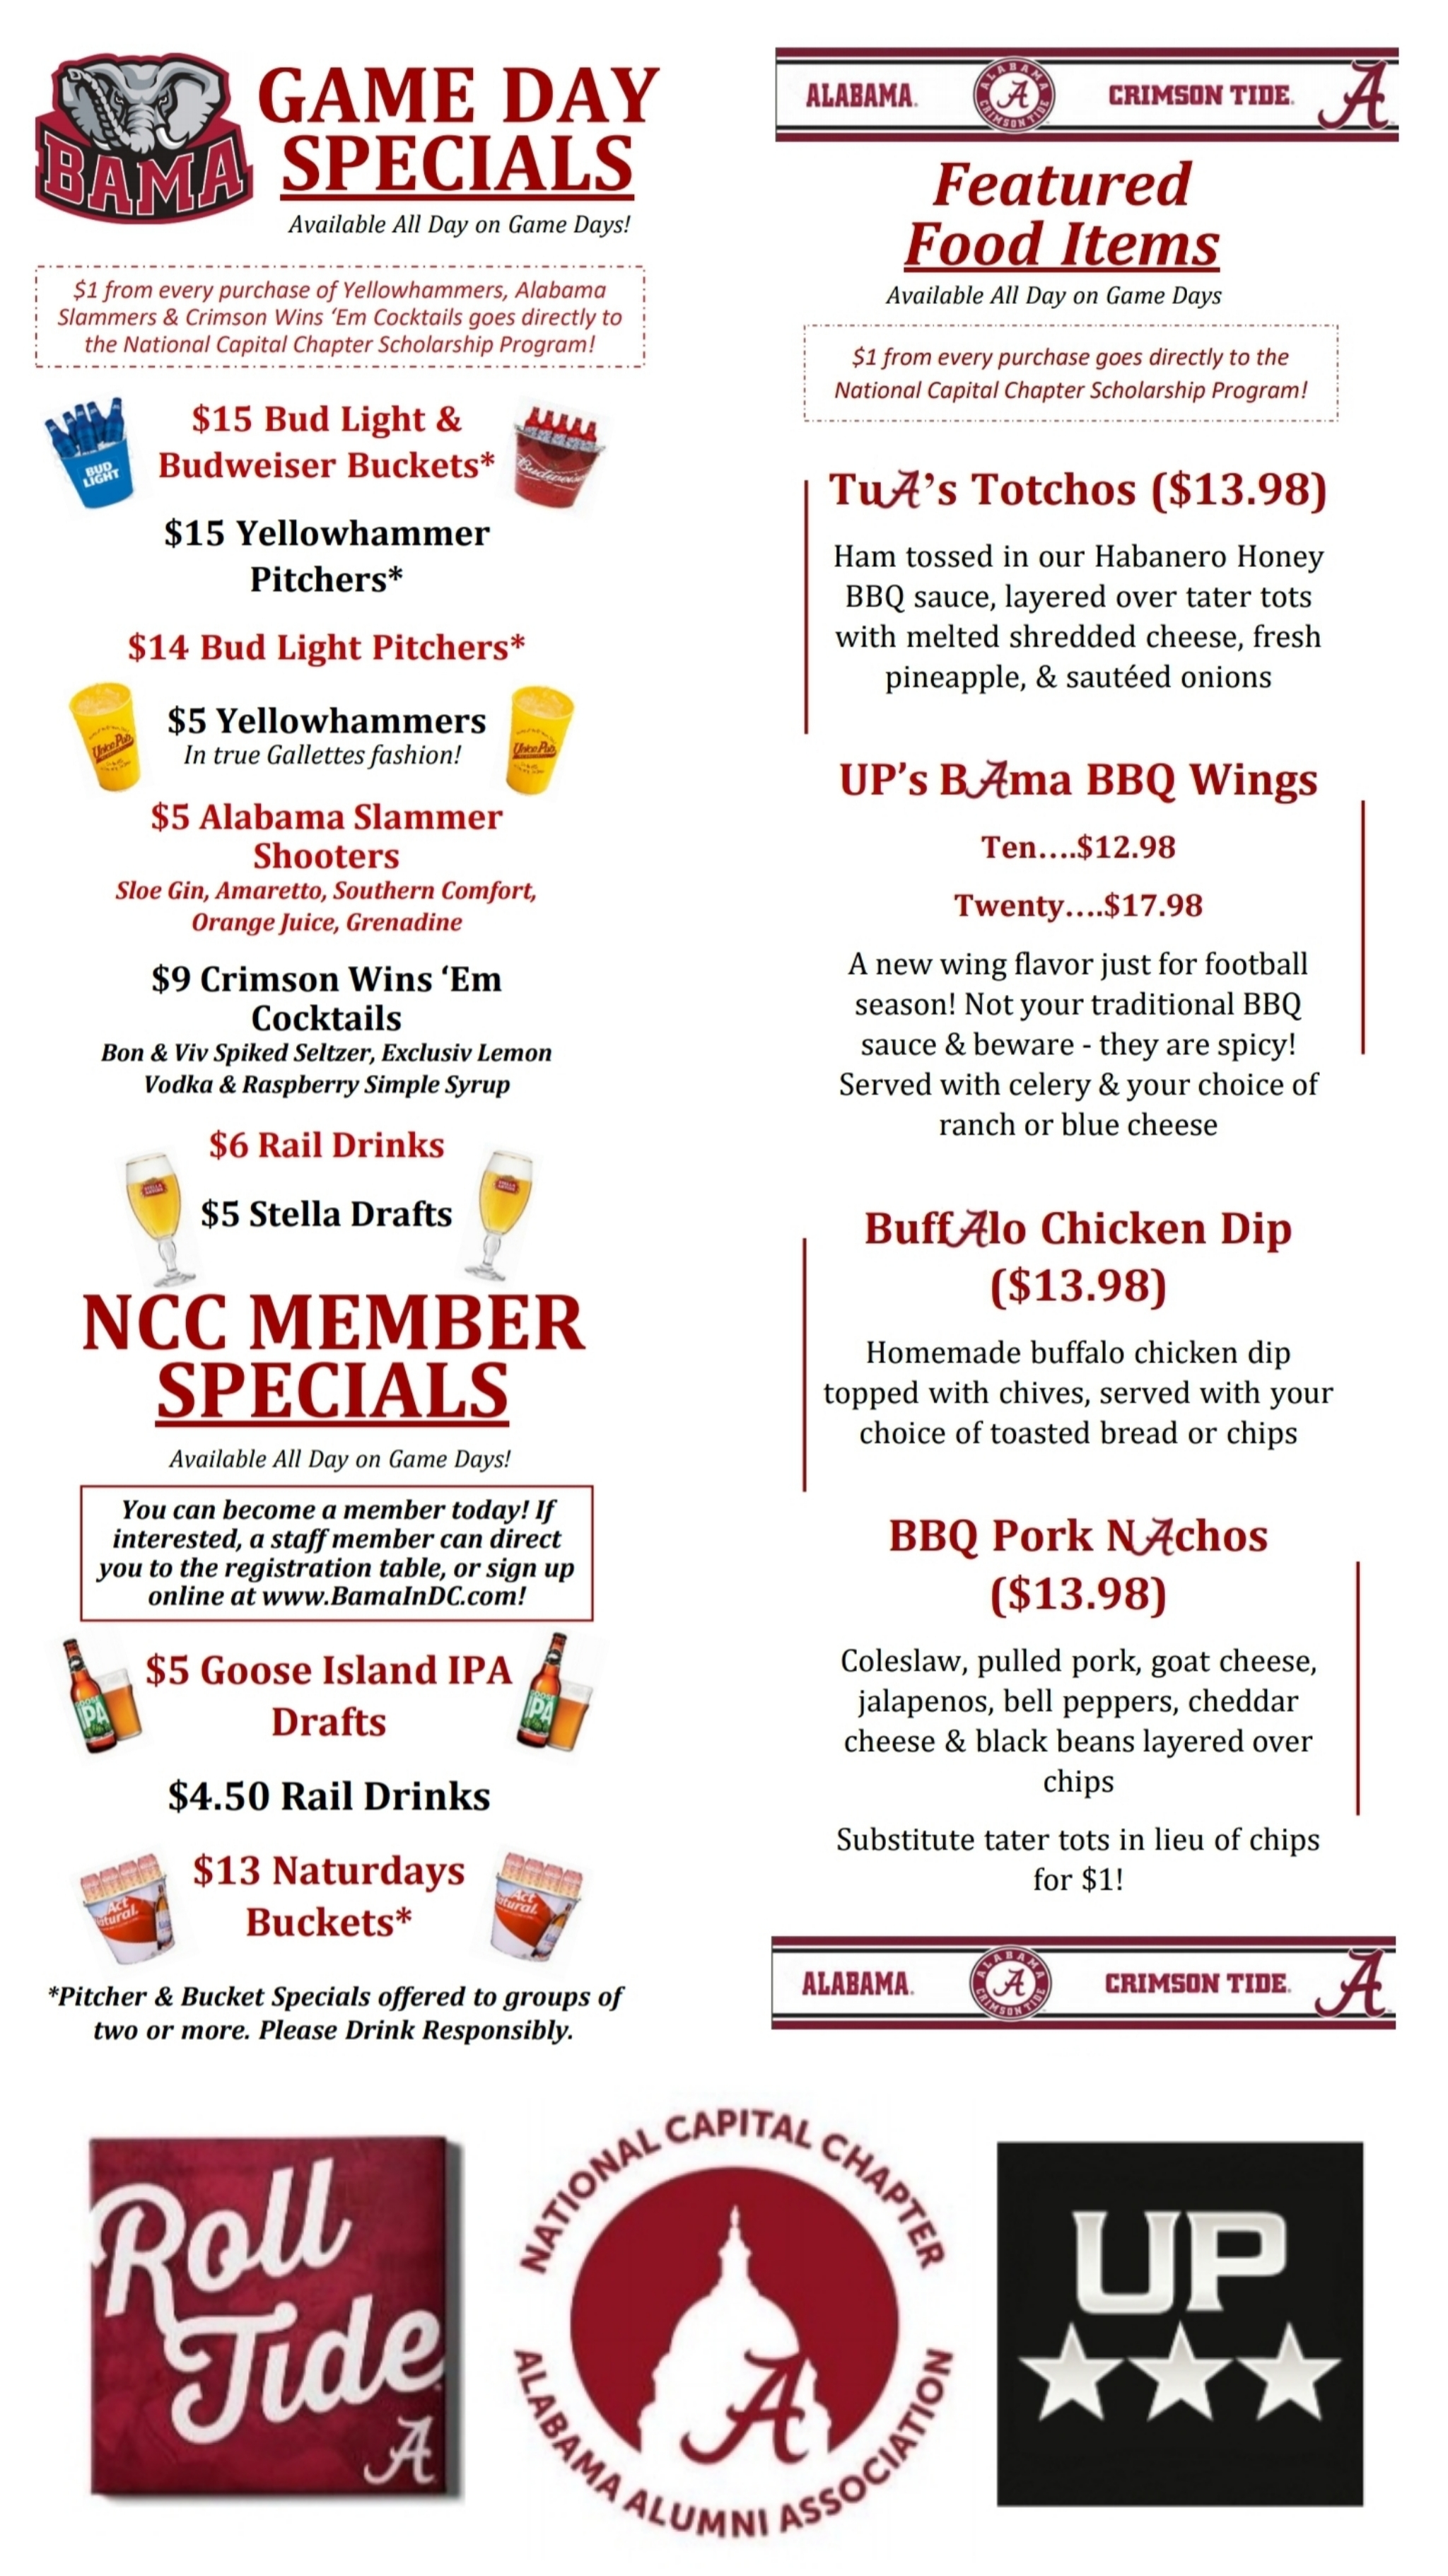 Bama Game Day Specials